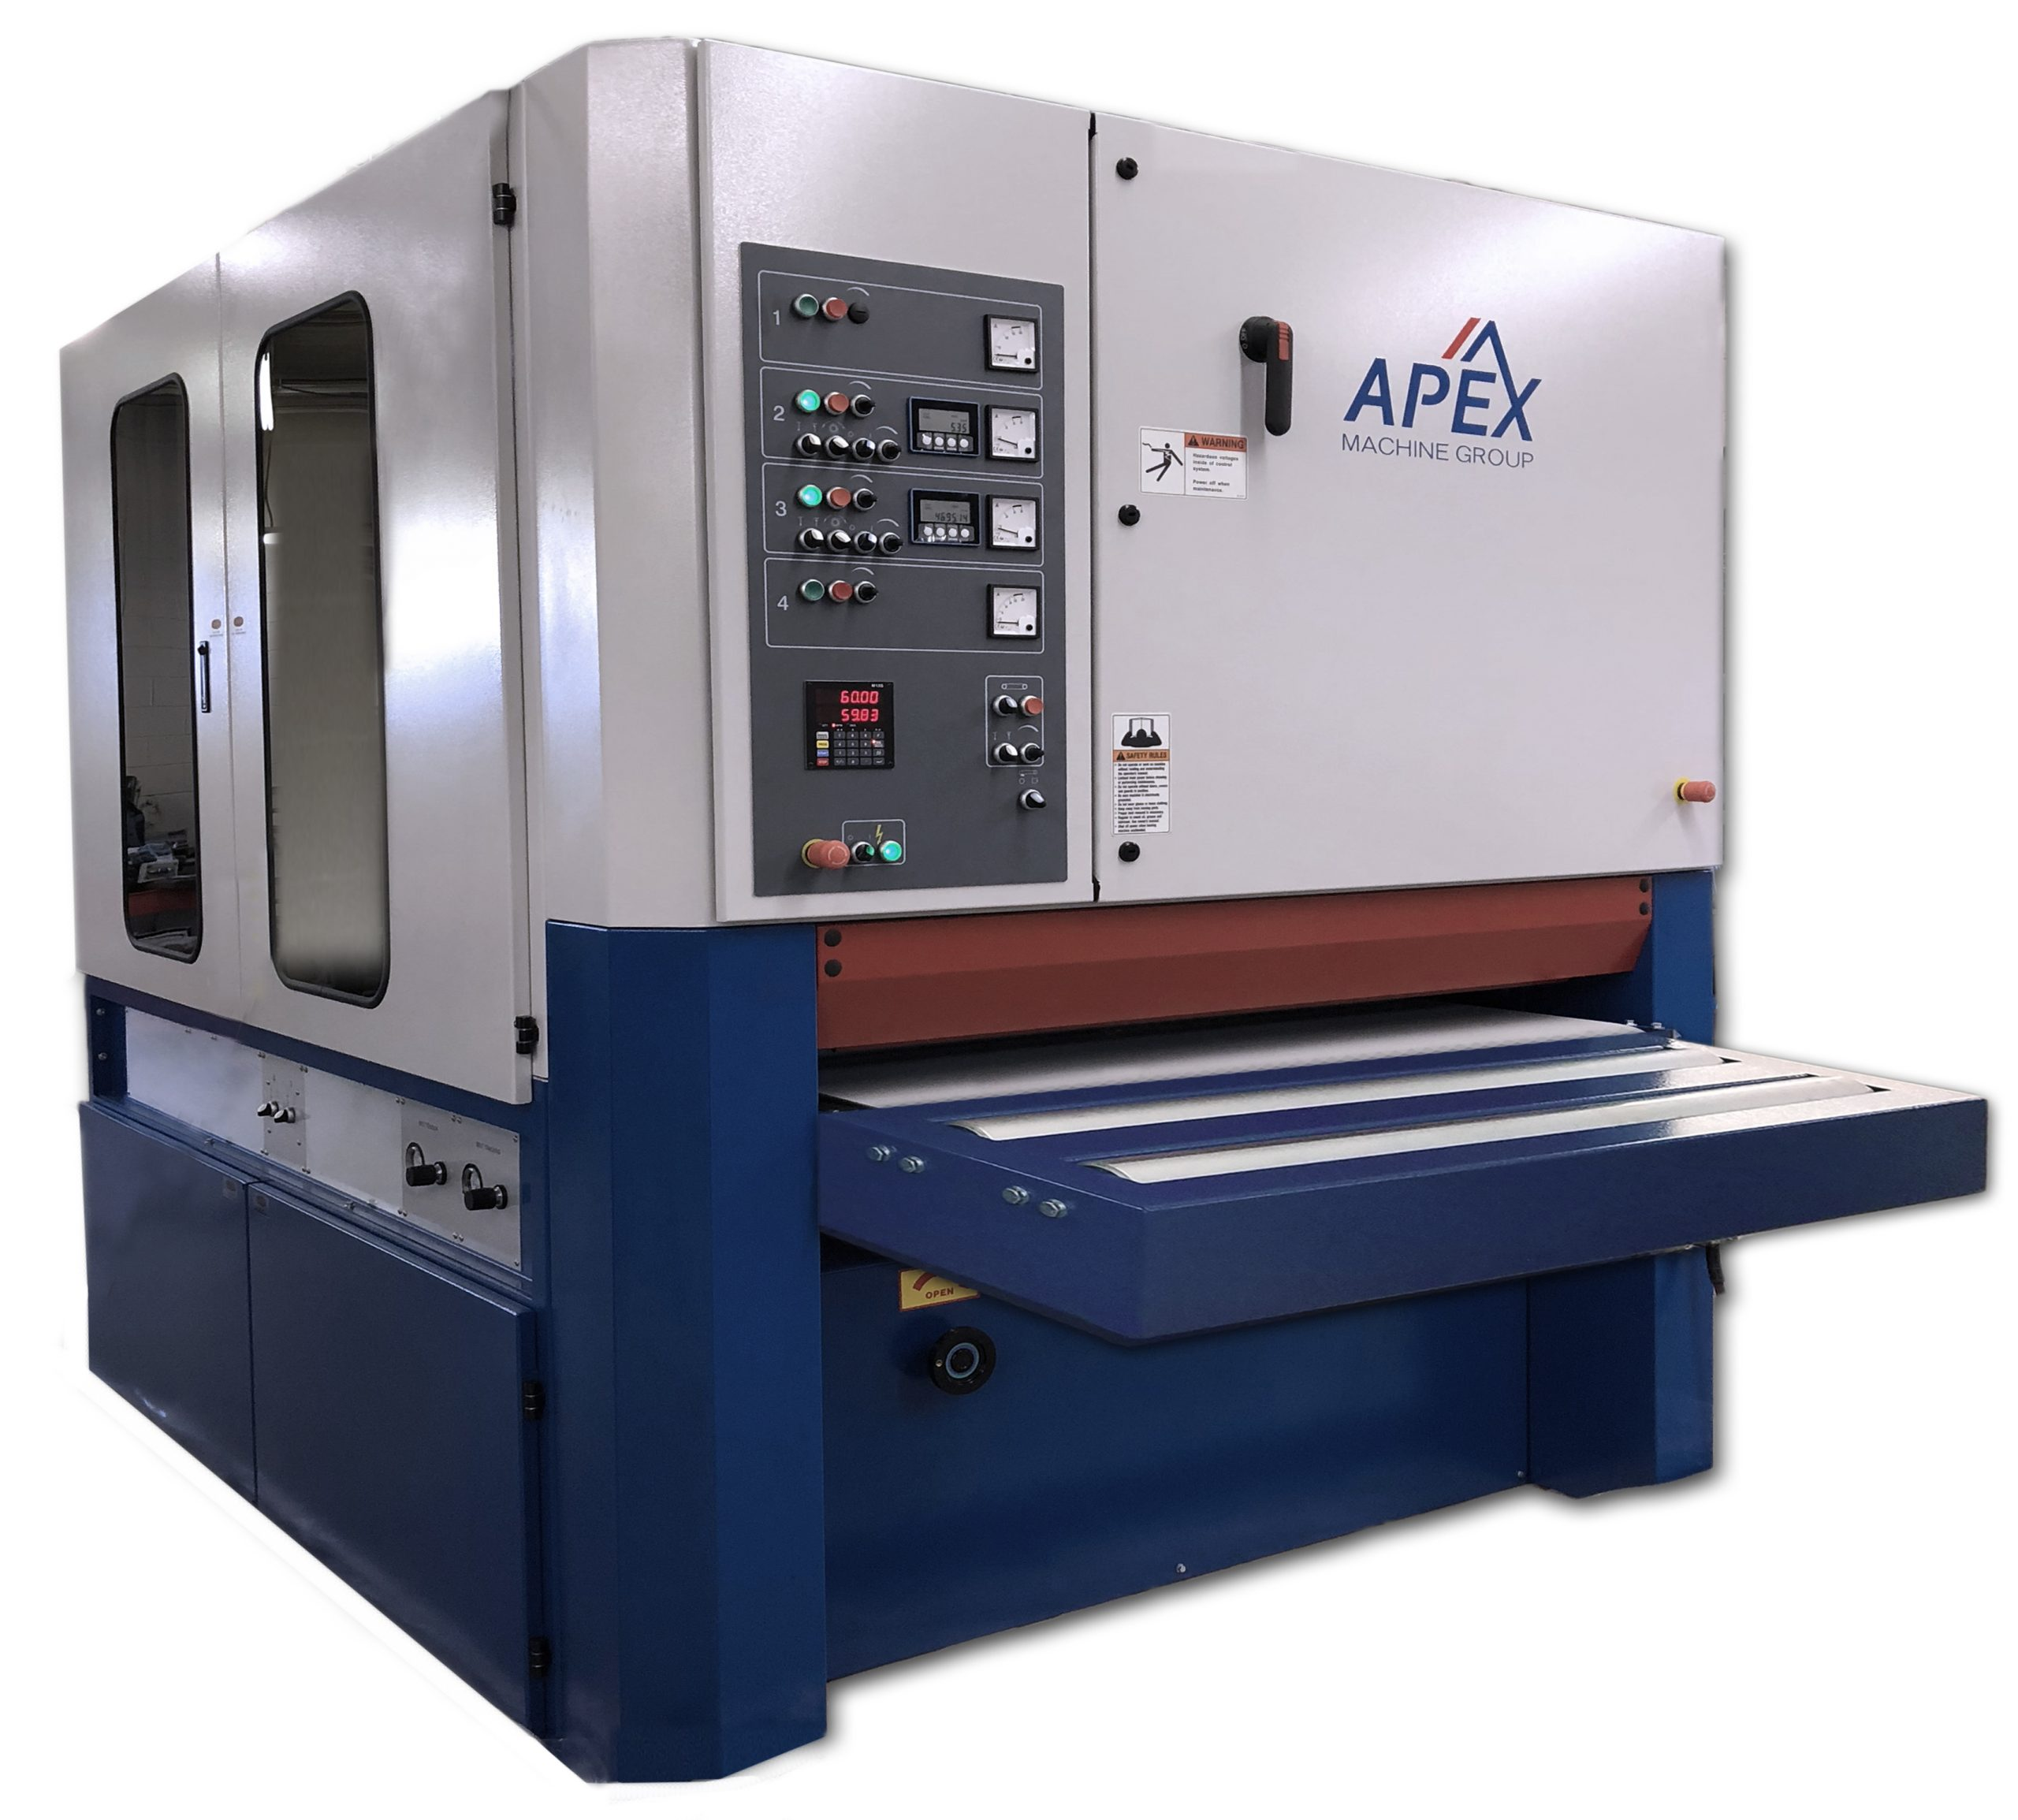 What to Look for When Purchasing a Deburring Machine